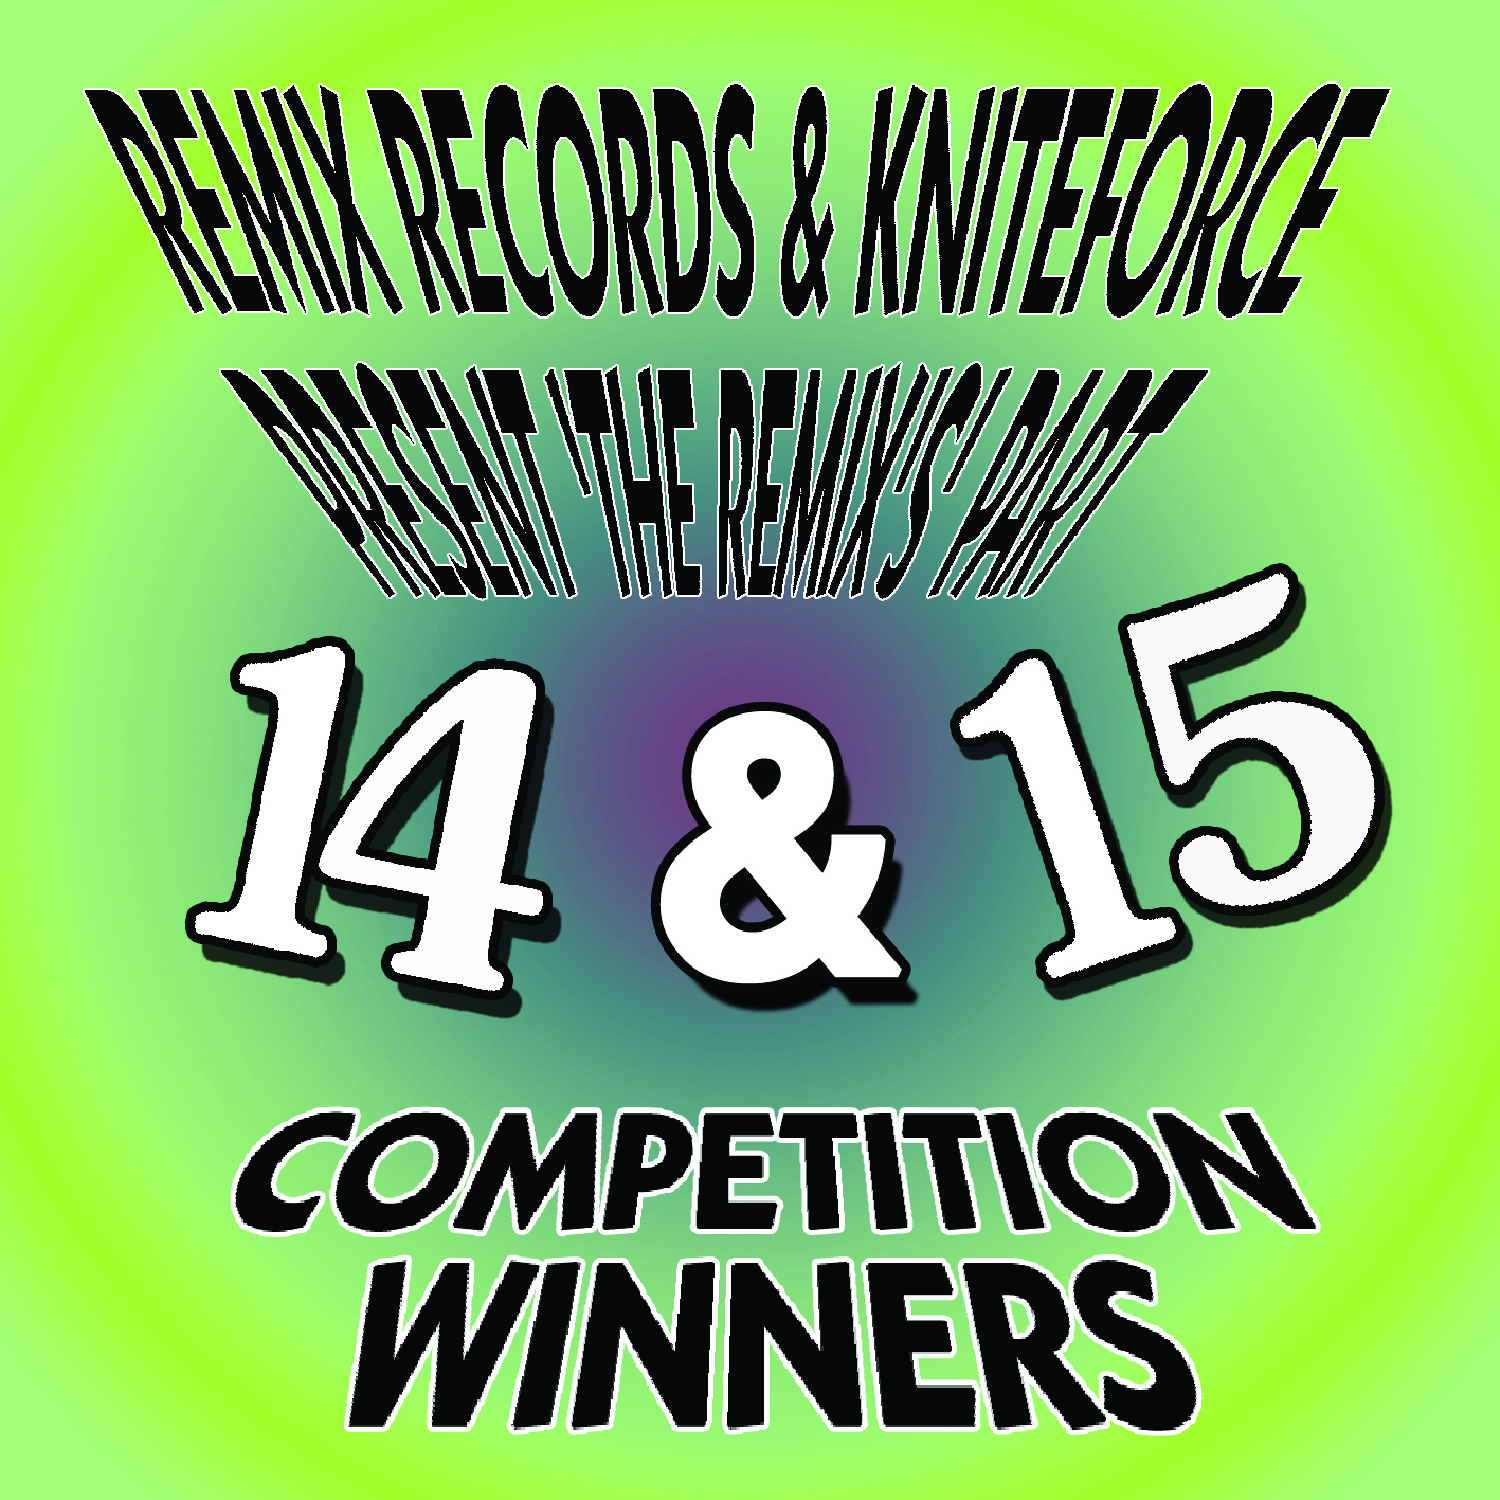 [KFCD37] Various - Remix's 14 & 15 Competion Winners EP (CD + Digital)